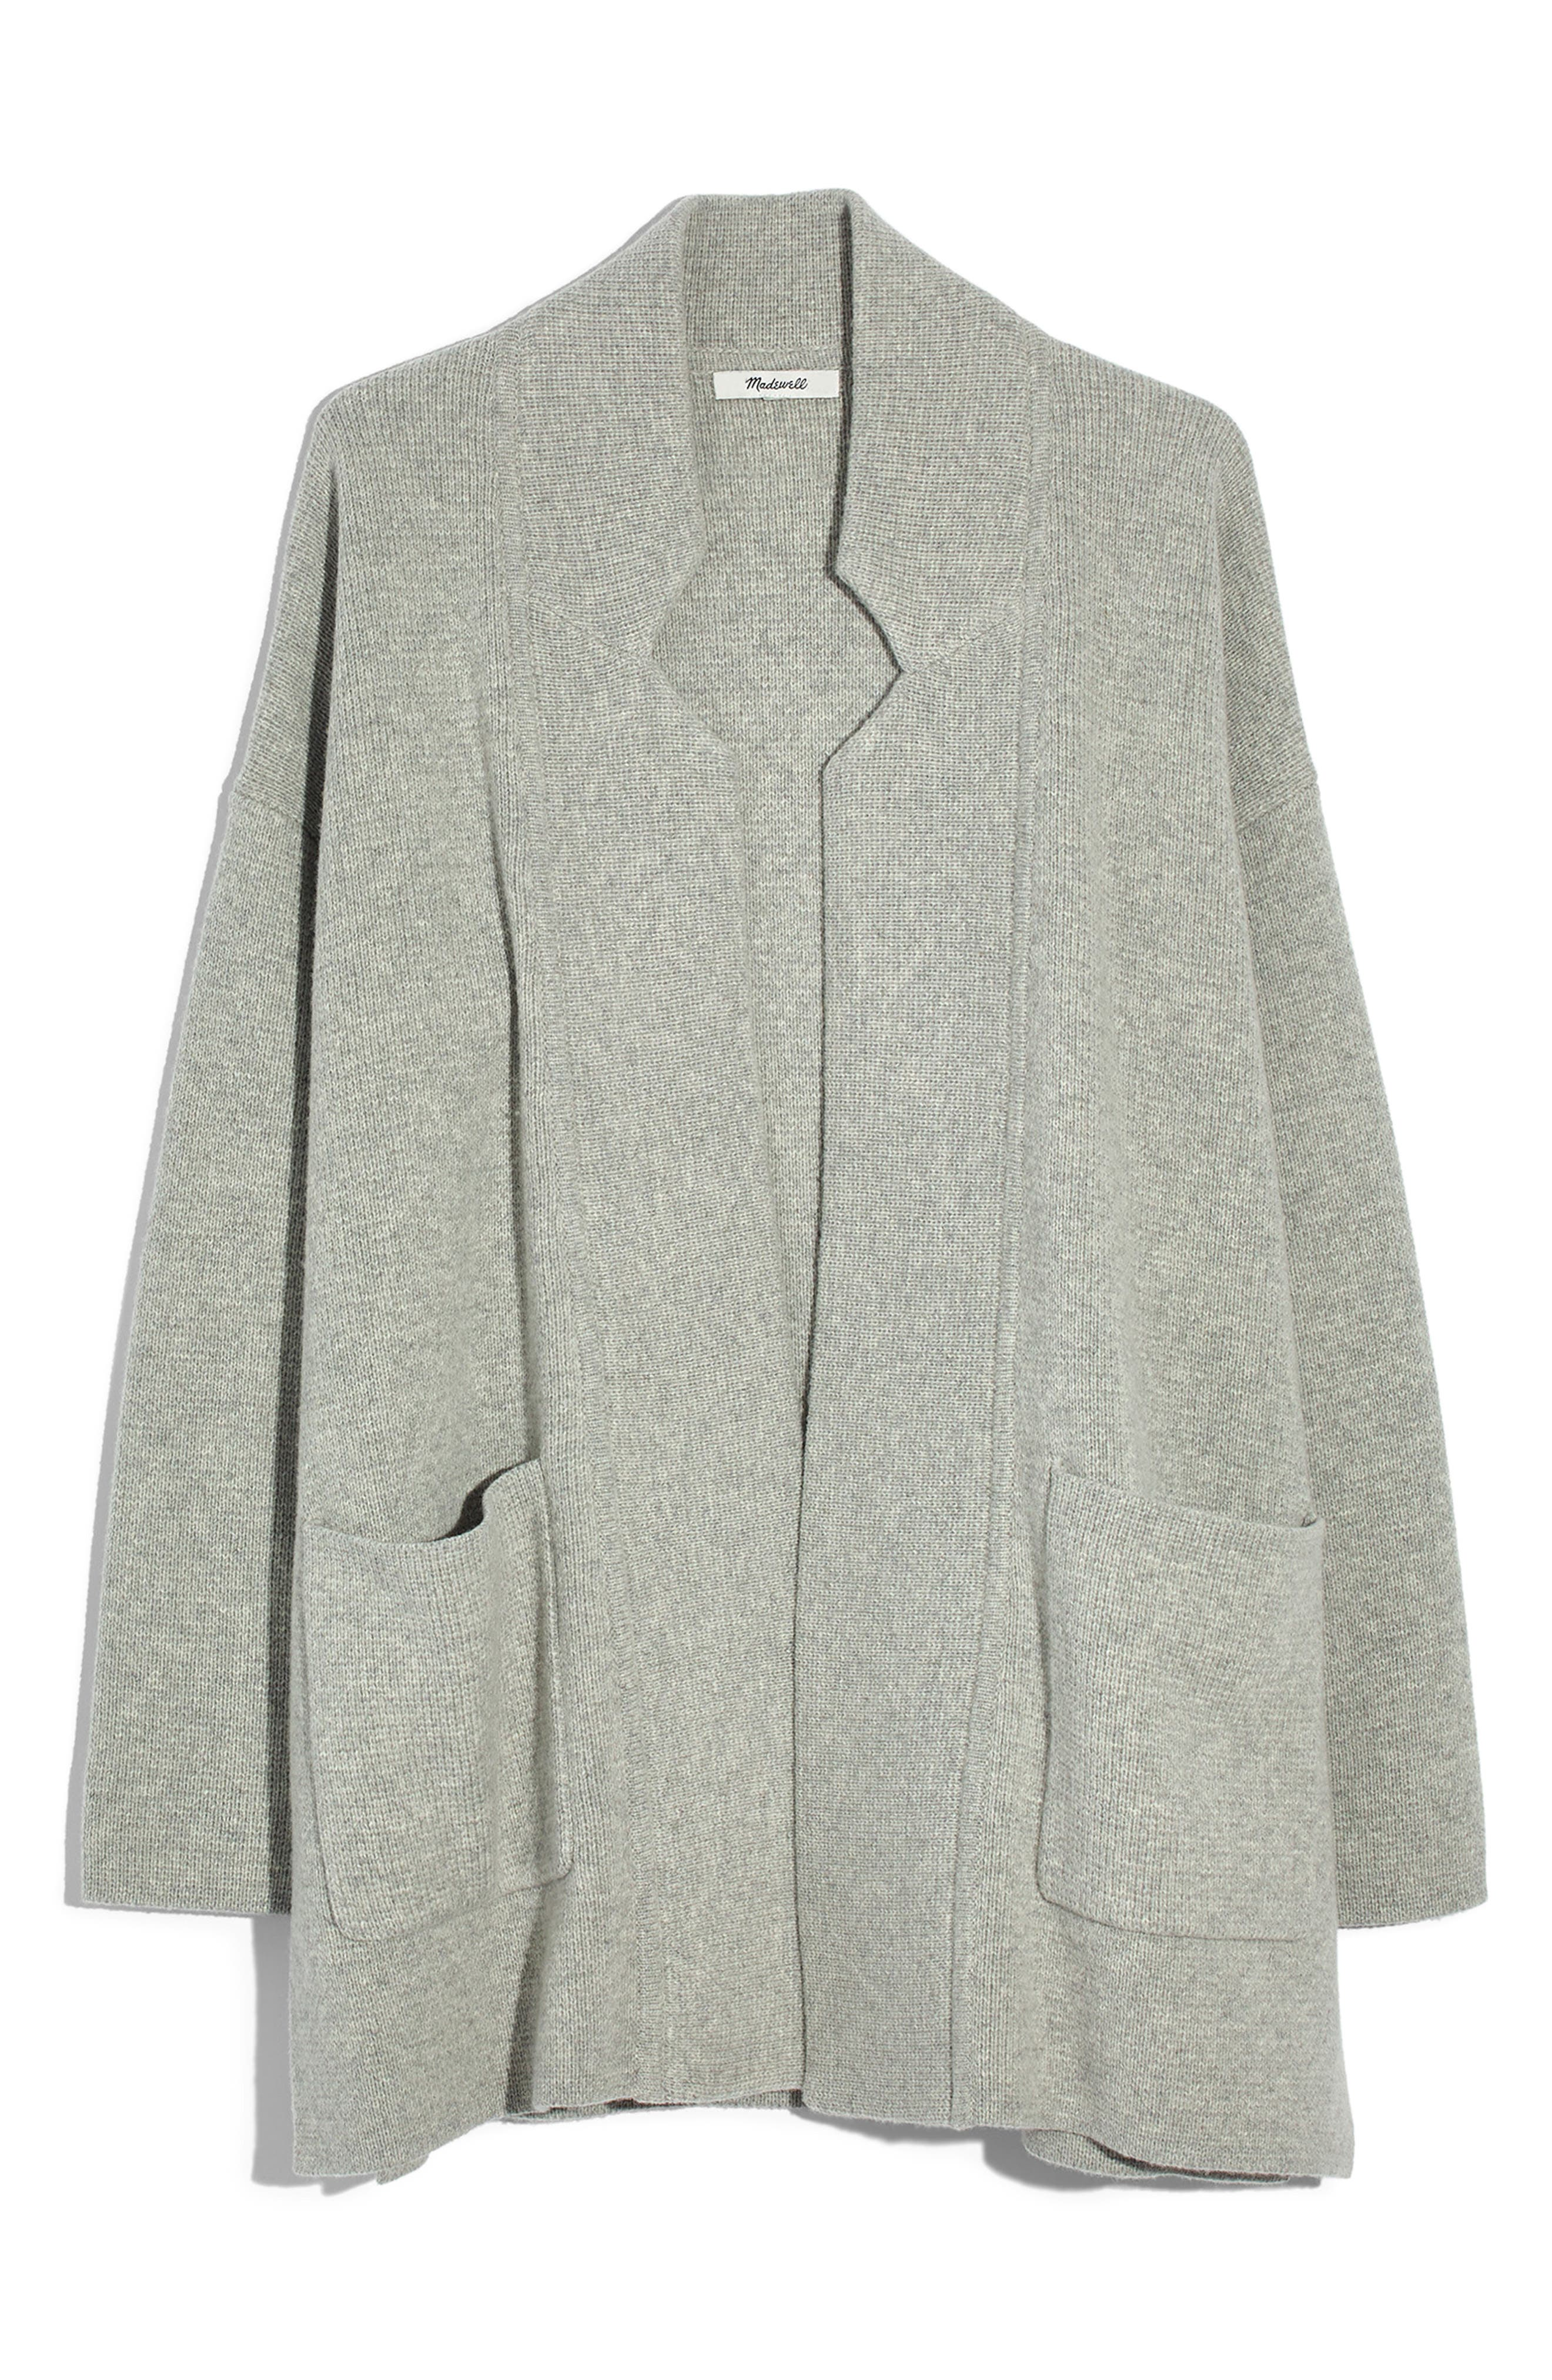 Spencer Sweater Coat,                         Main,                         color, HEATHER PEBBLE